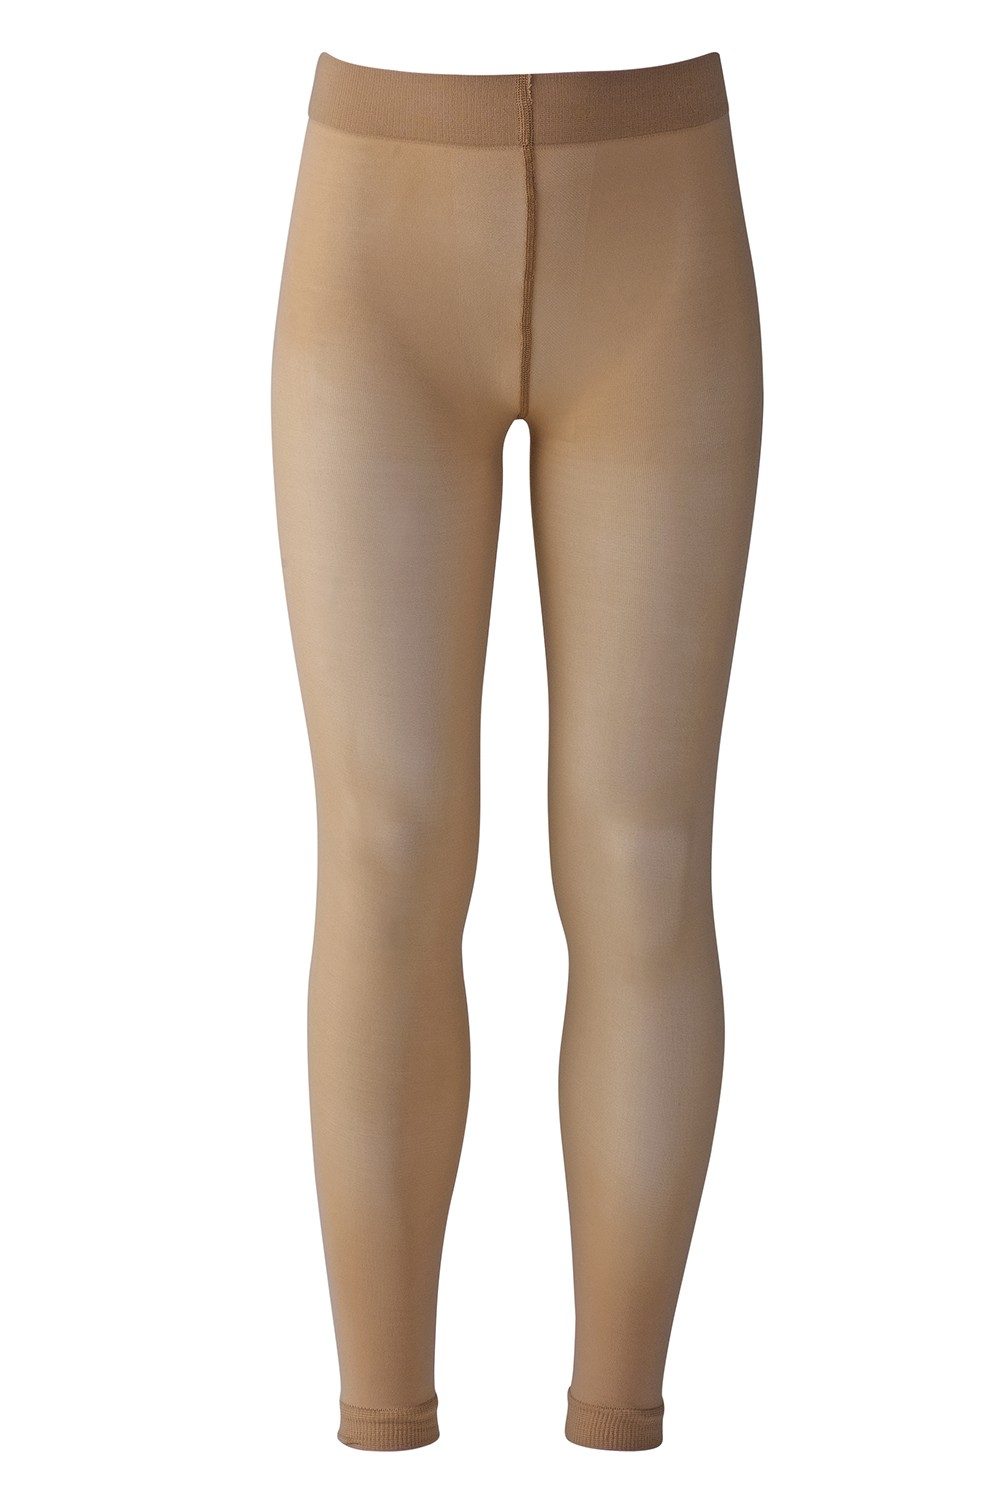 Footless Microfibre Bloch Tight Women's Dance Tights